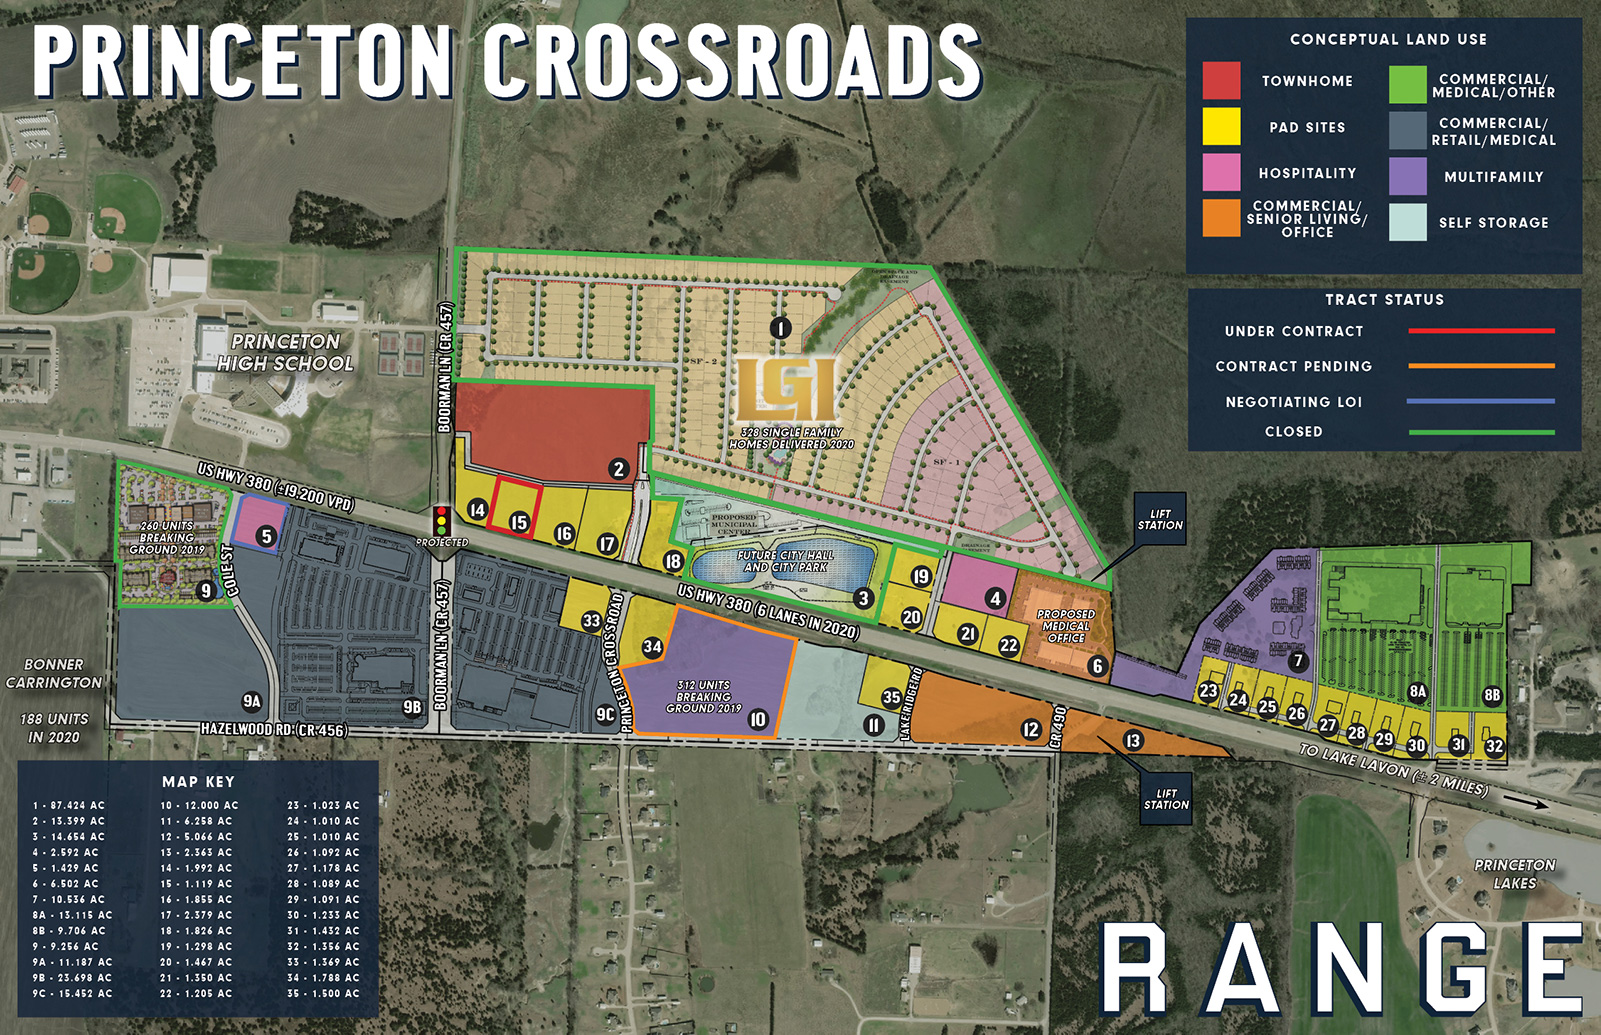 Princeton Crossroads - Mixed Use Land for Sale Texas